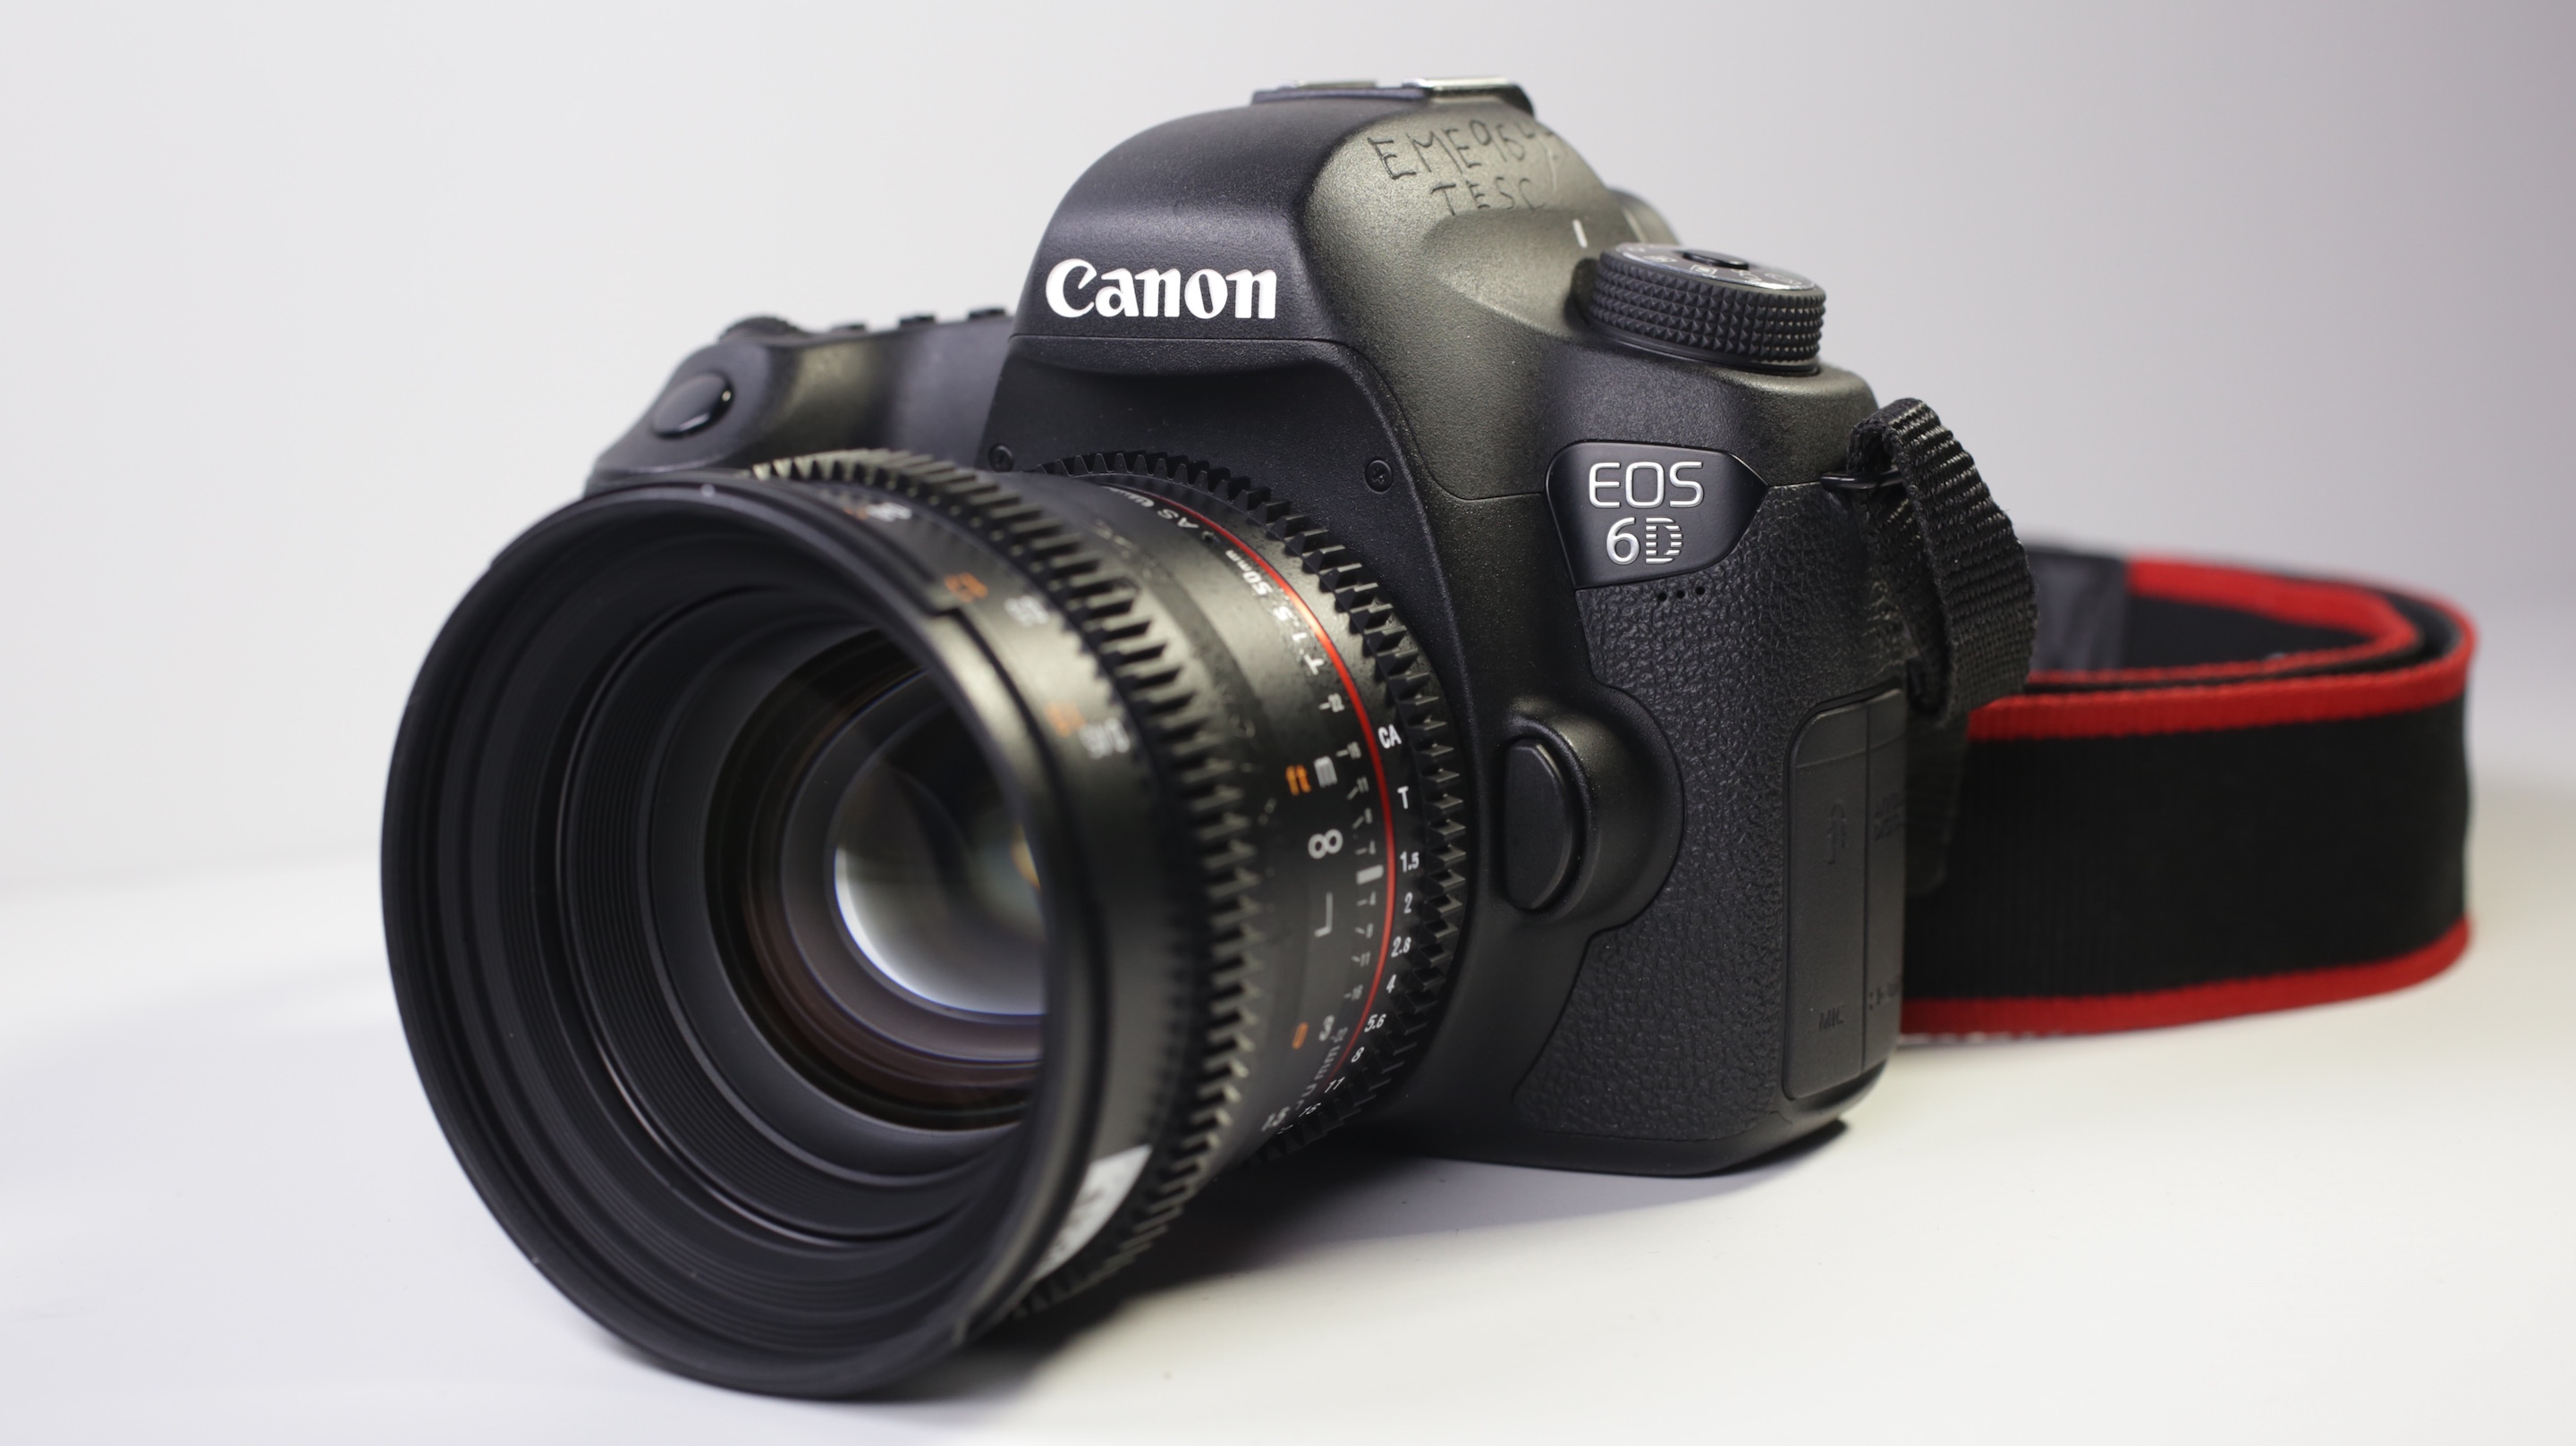 canon 6d operating guide help wiki rh helpwiki evergreen edu Canon 6D Astrophotography canon 6d manual focus lens